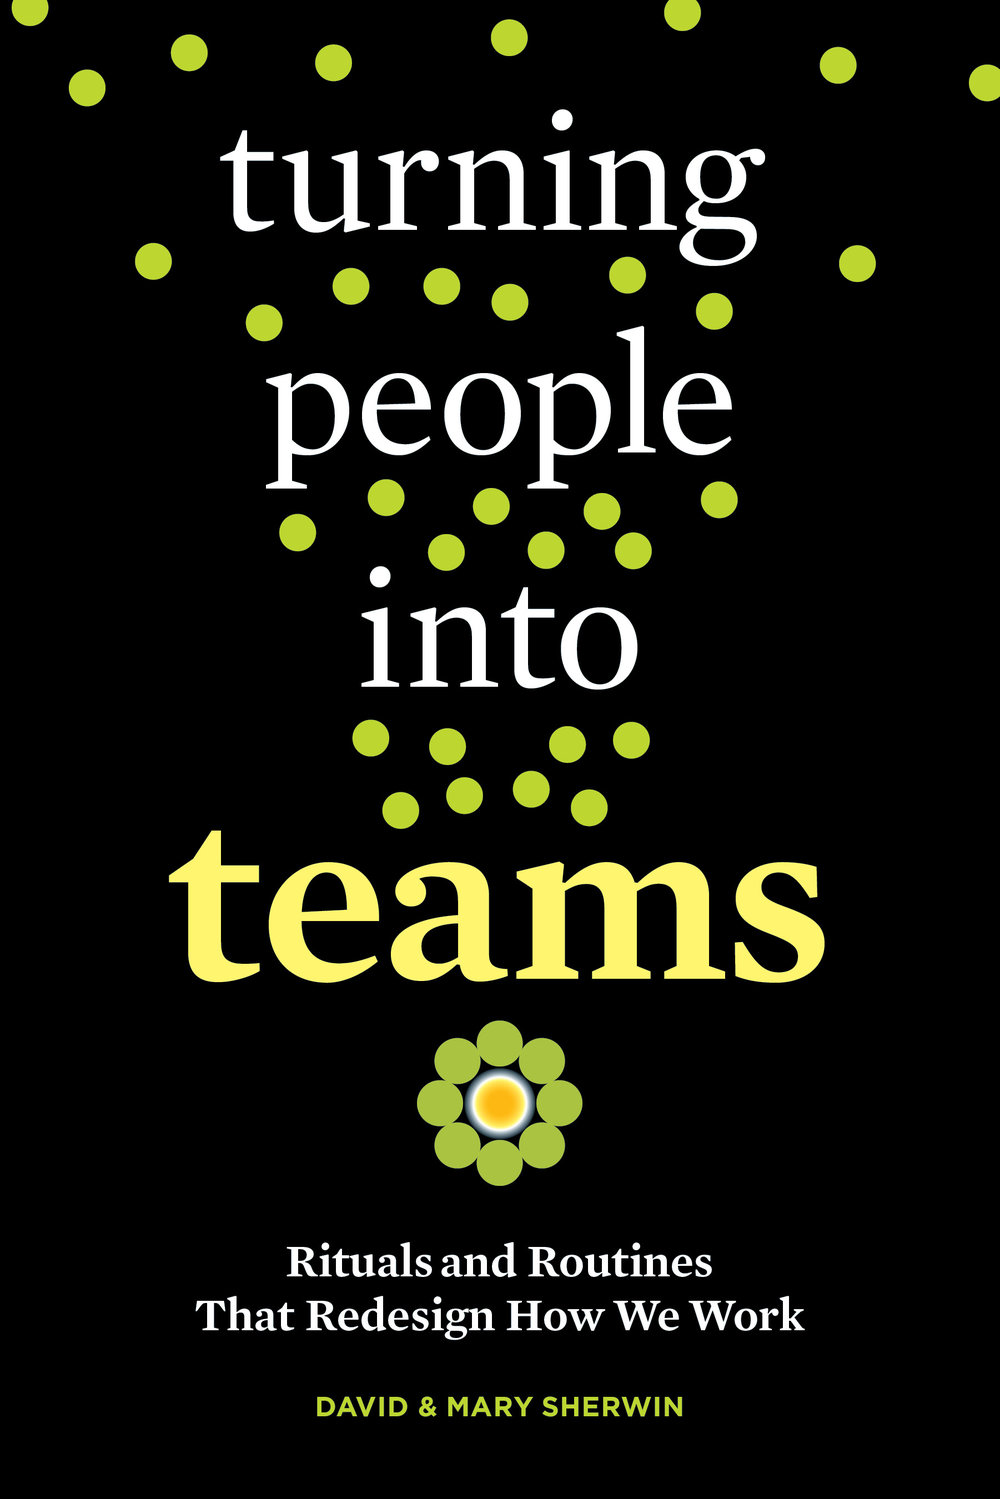 Turning People into Teams: Rituals and Routines That Redesign How We Work   .  Our new book on creating great team experiences, published by Berrett-Koehler and distributed by Penguin-Random House.